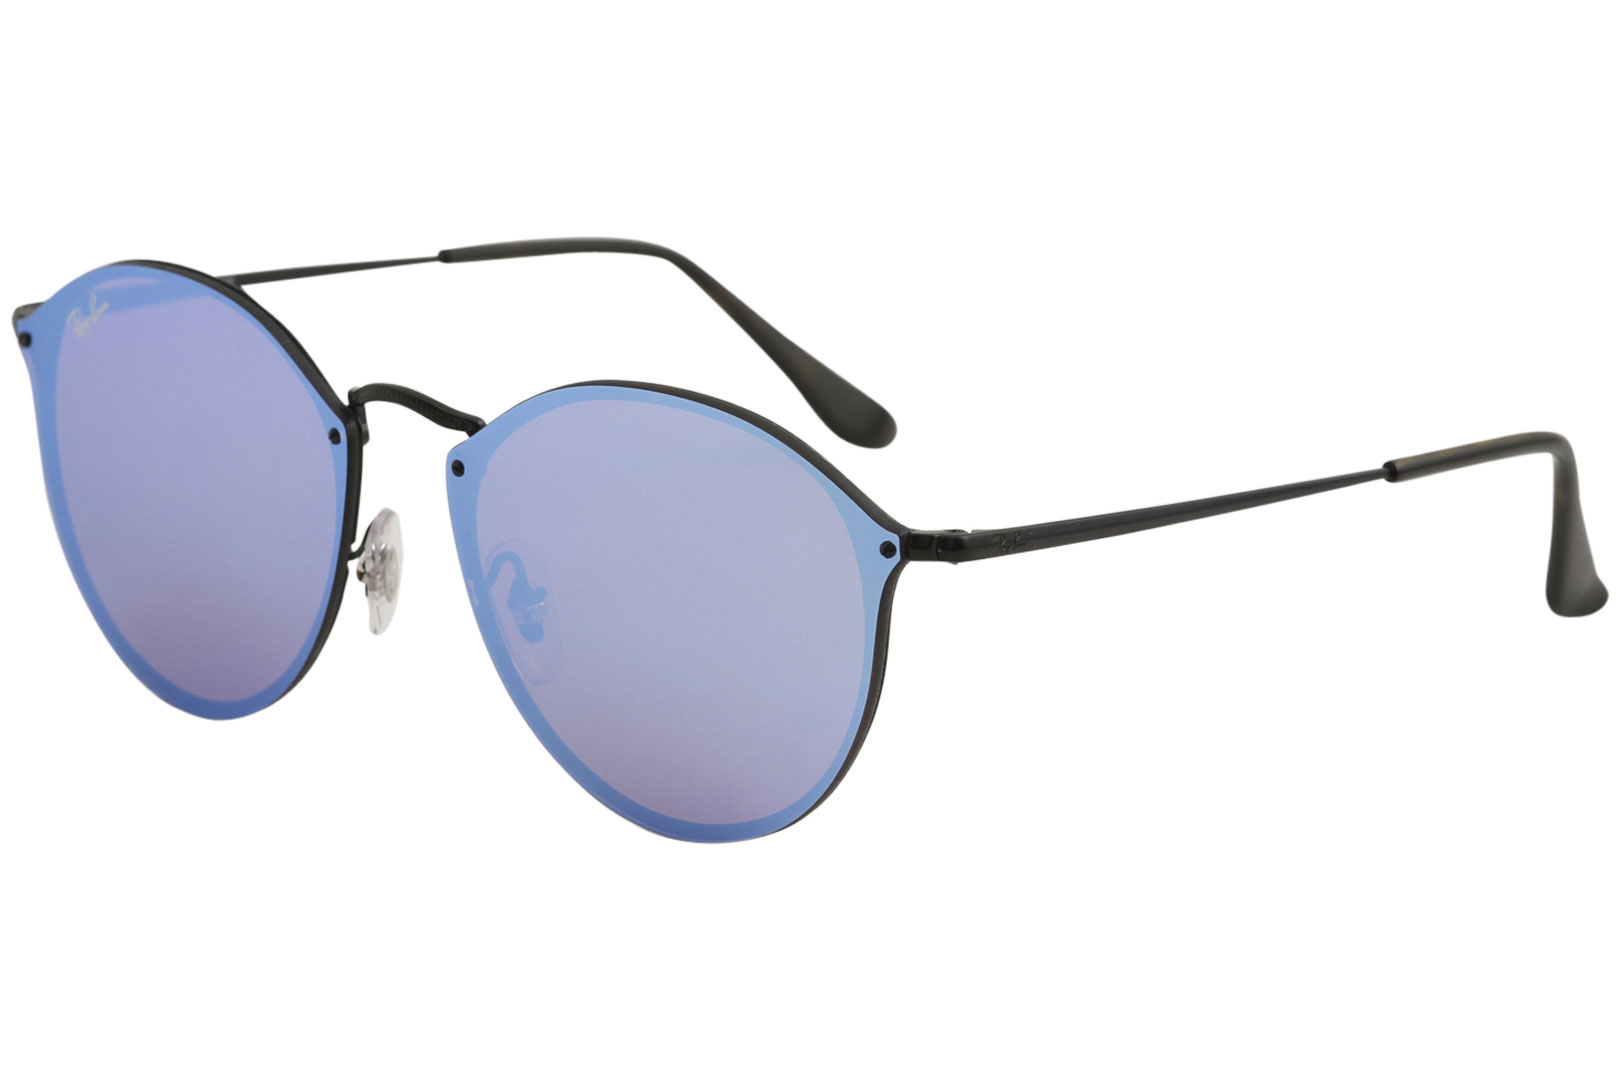 ea2417b8e9 Details about Ray Ban Blaze Round RB3574N RB 3574 1537V Demigloss Black  RayBan Sunglasses 59mm